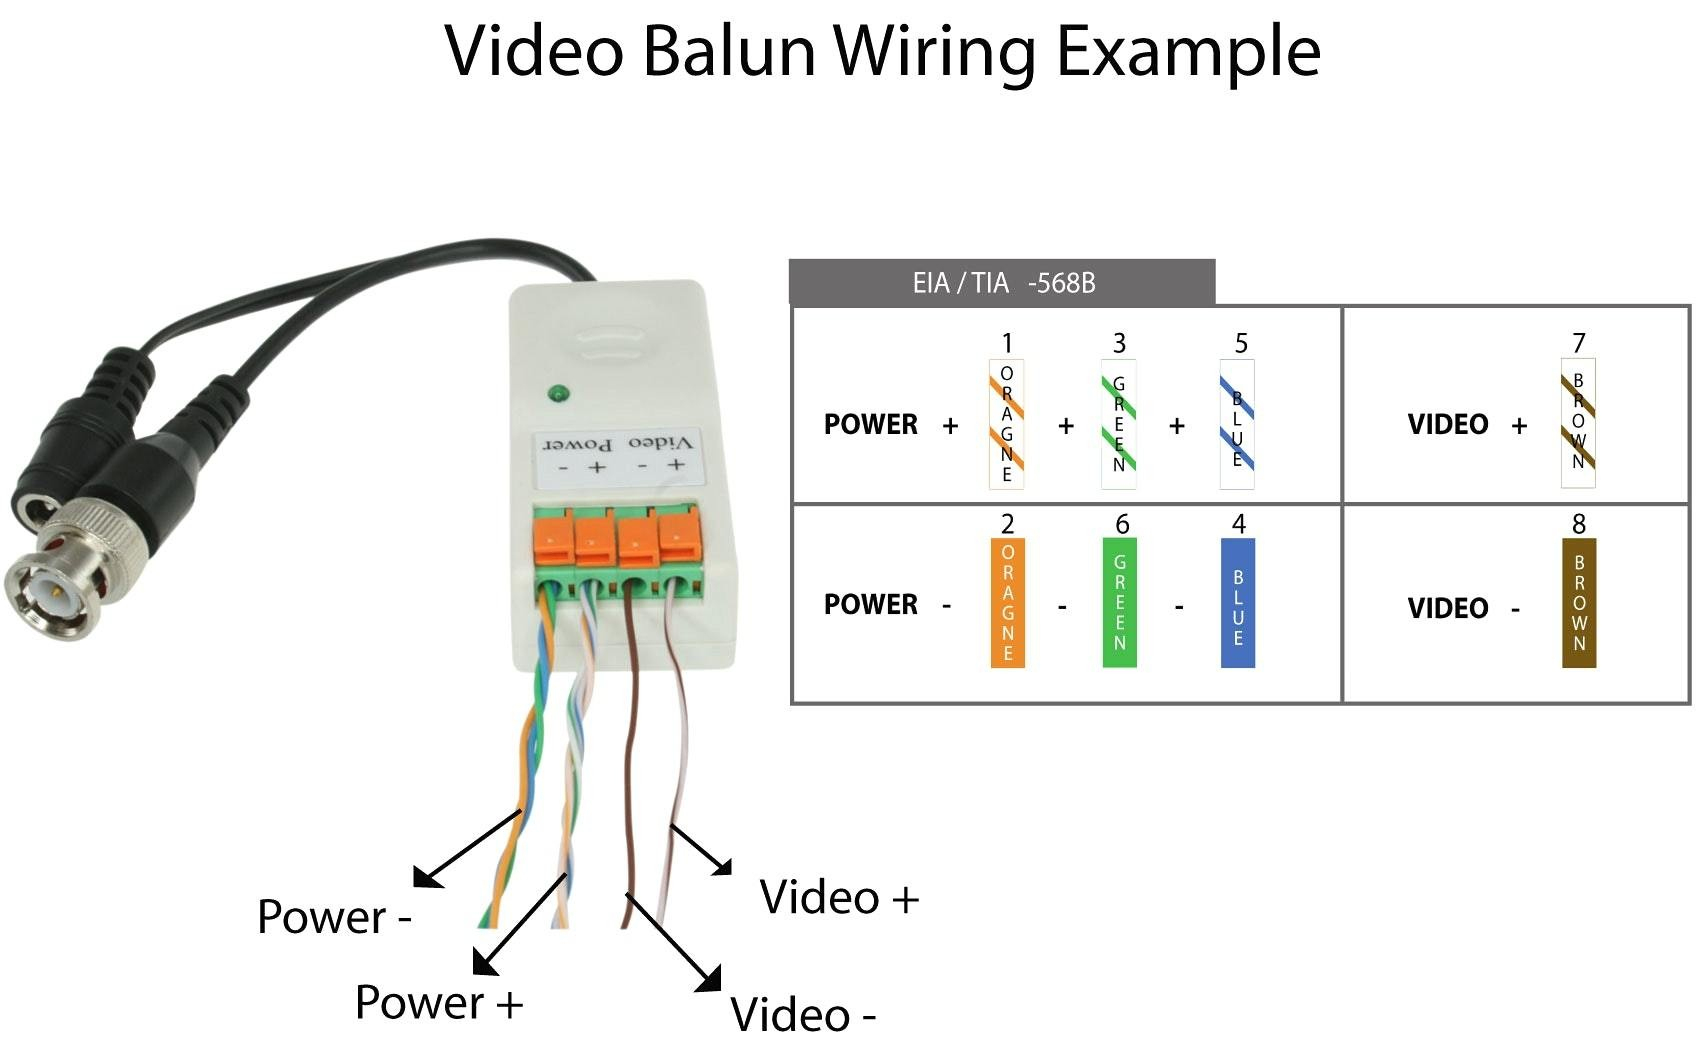 Usb Wiring Schematic Diagram | Wiring Library - Wiring Diagram Hdmi To Usb